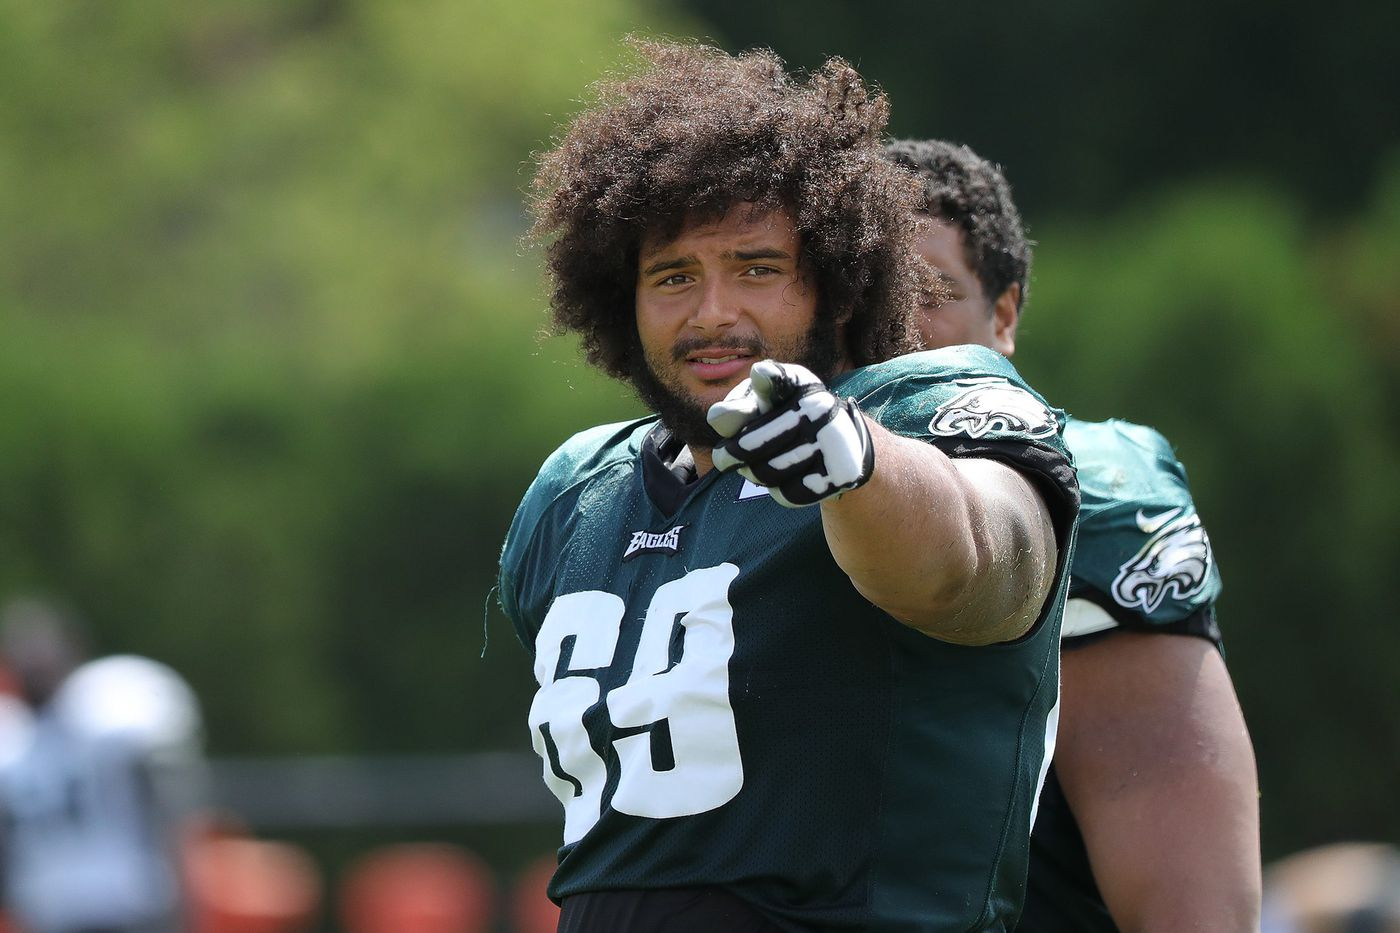 Rookie guard Matt Pryor is hands-on favorite to make the Eagles   Jeff McLane